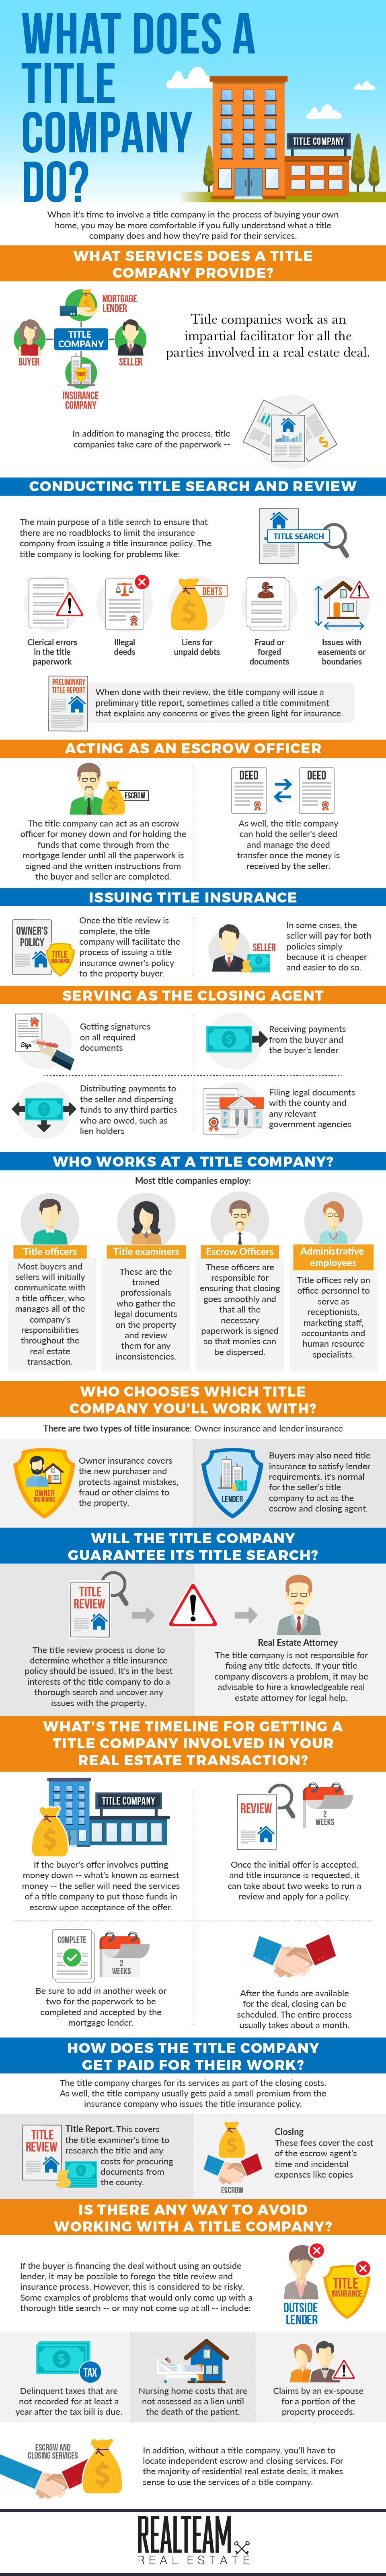 What Does A Title Company Do.png